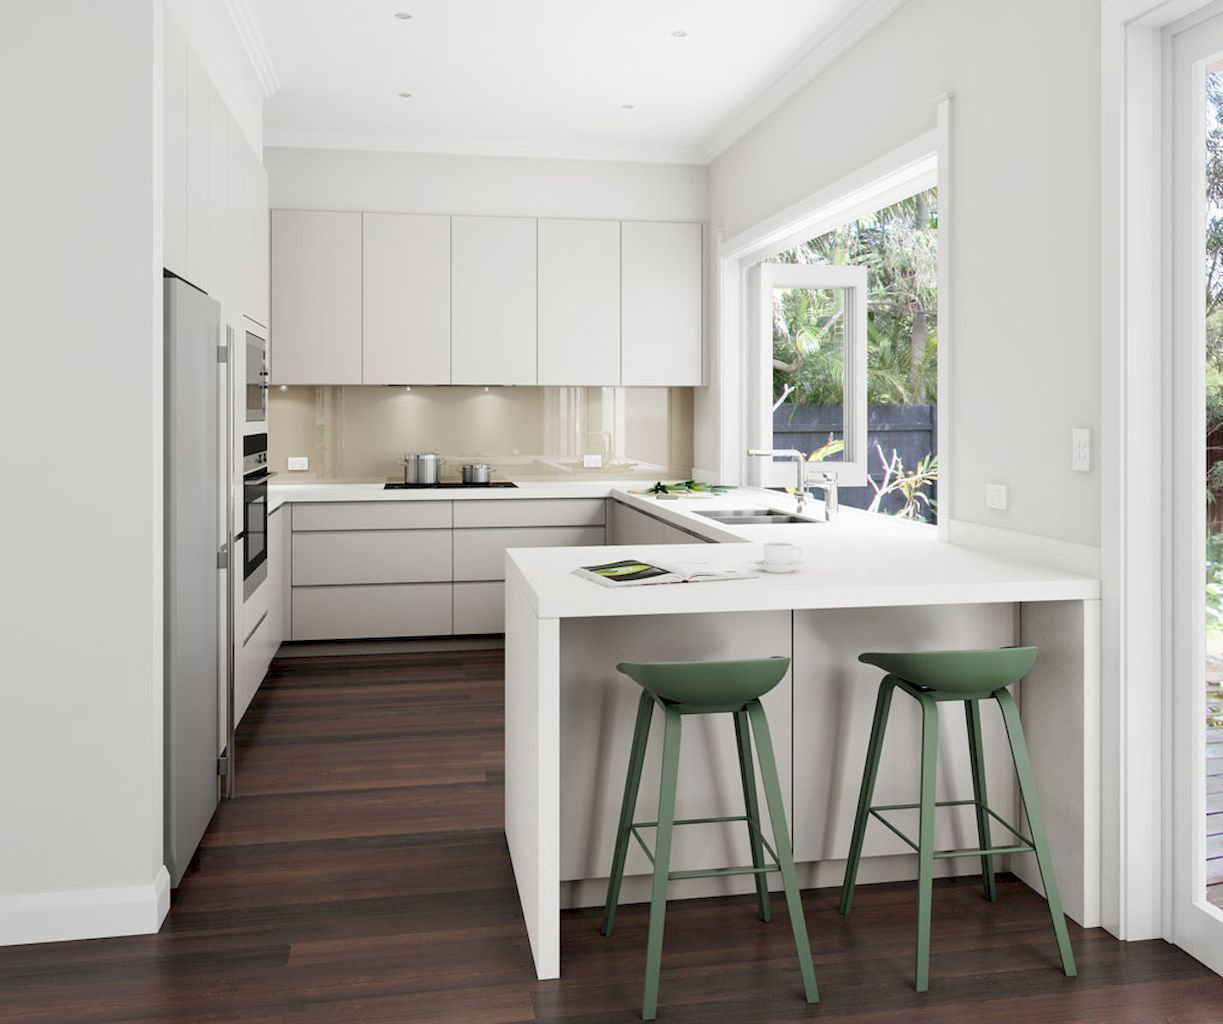 Nice 90 Inspirations for Small Kitchen Remodel Ideas on A Budget ...